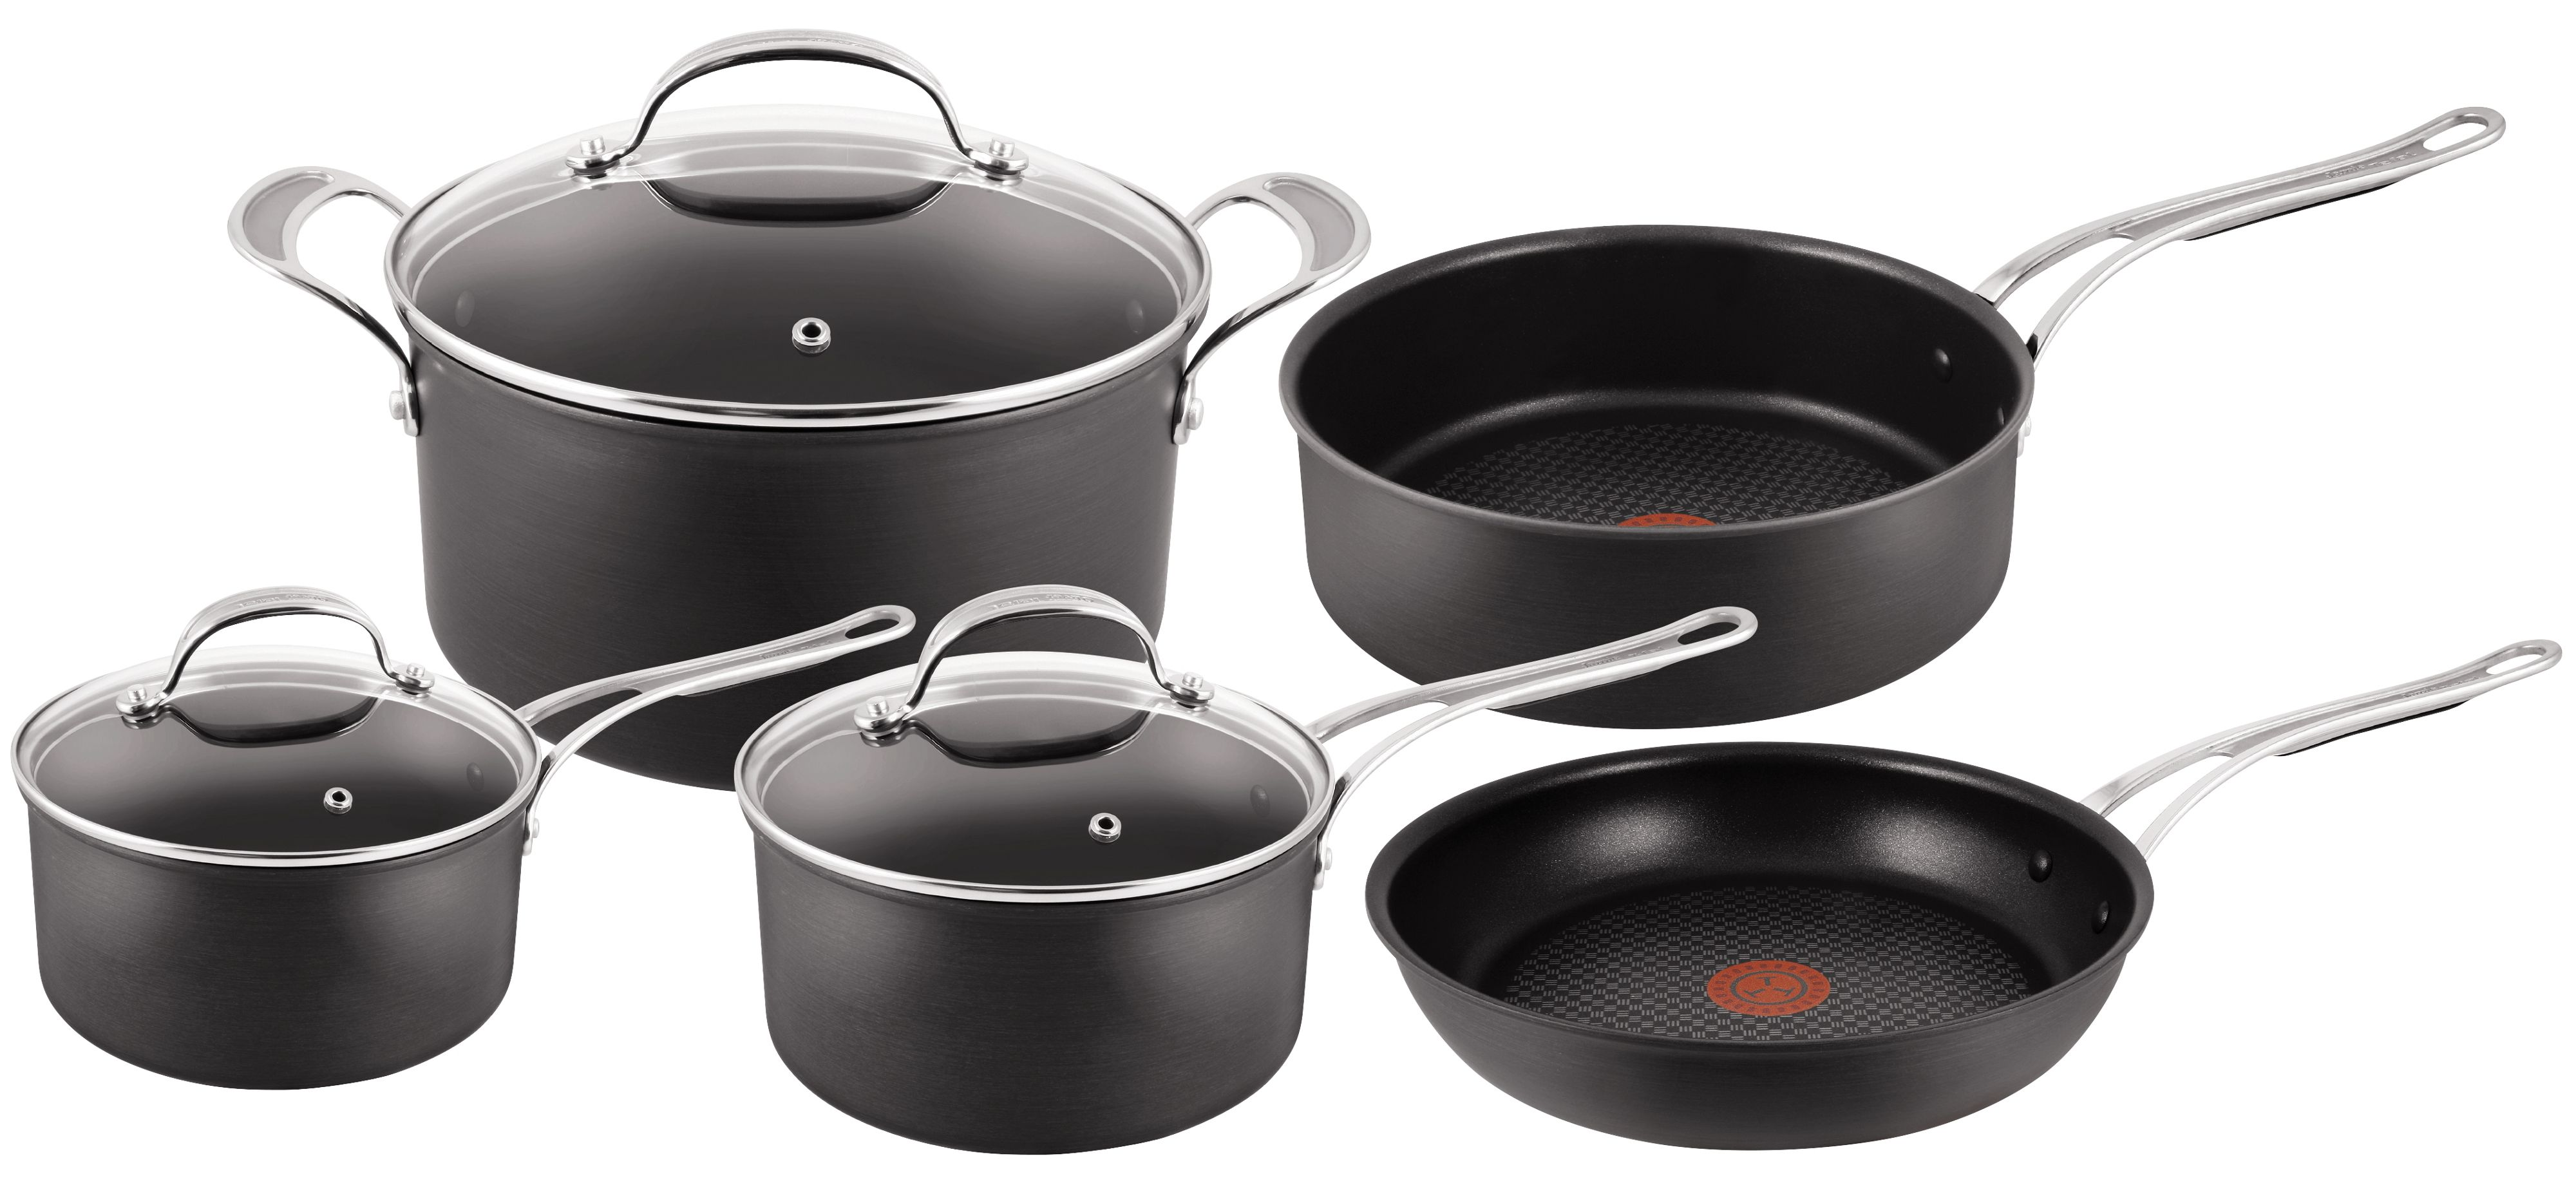 Jamie Oliver by Tefal Hard Anodised 5 Piece Set